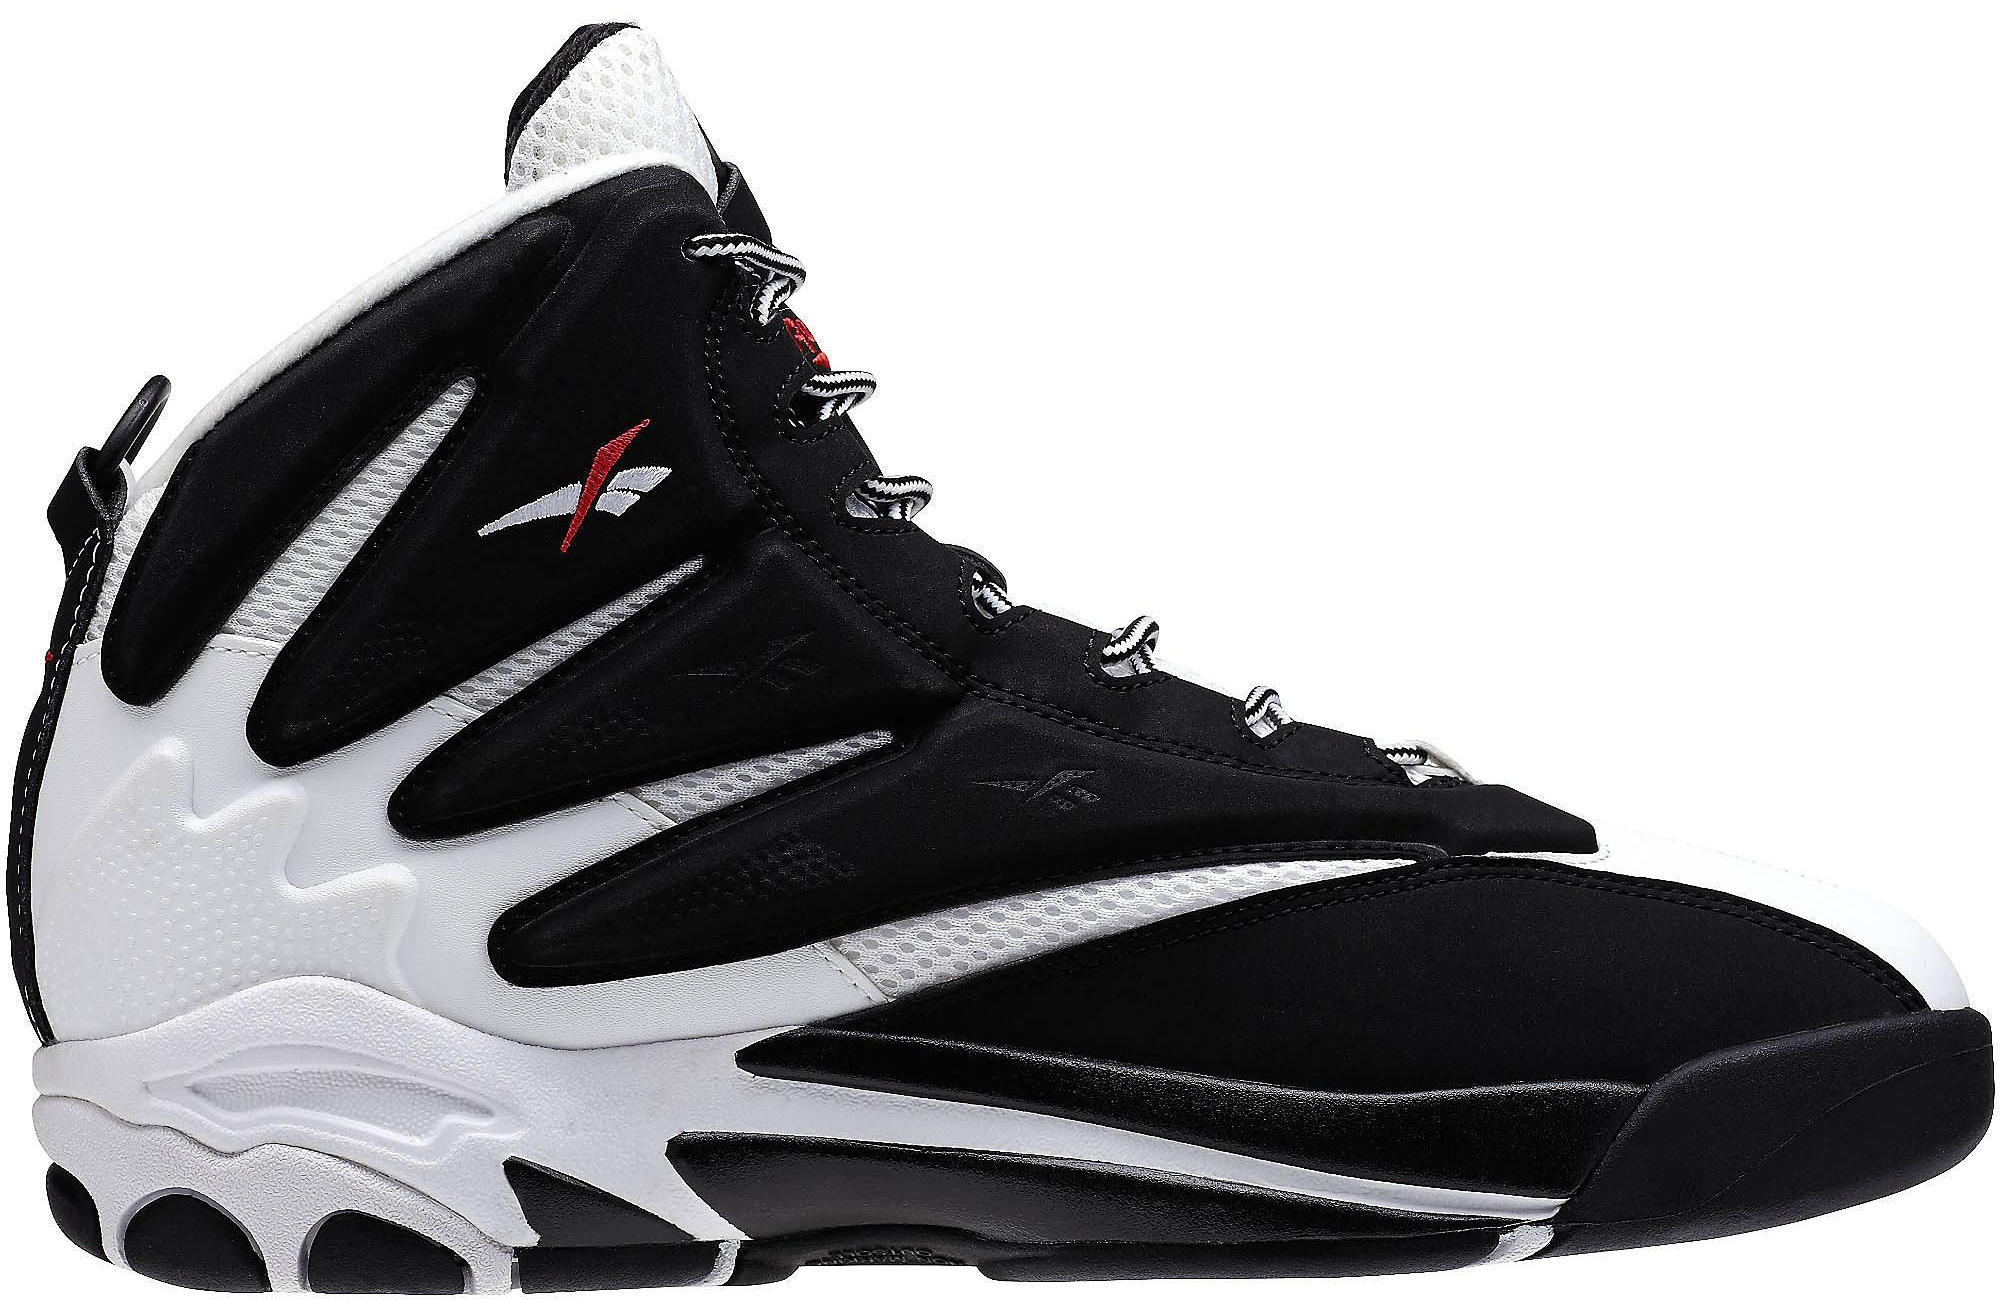 Reebok The Blast White Black Red